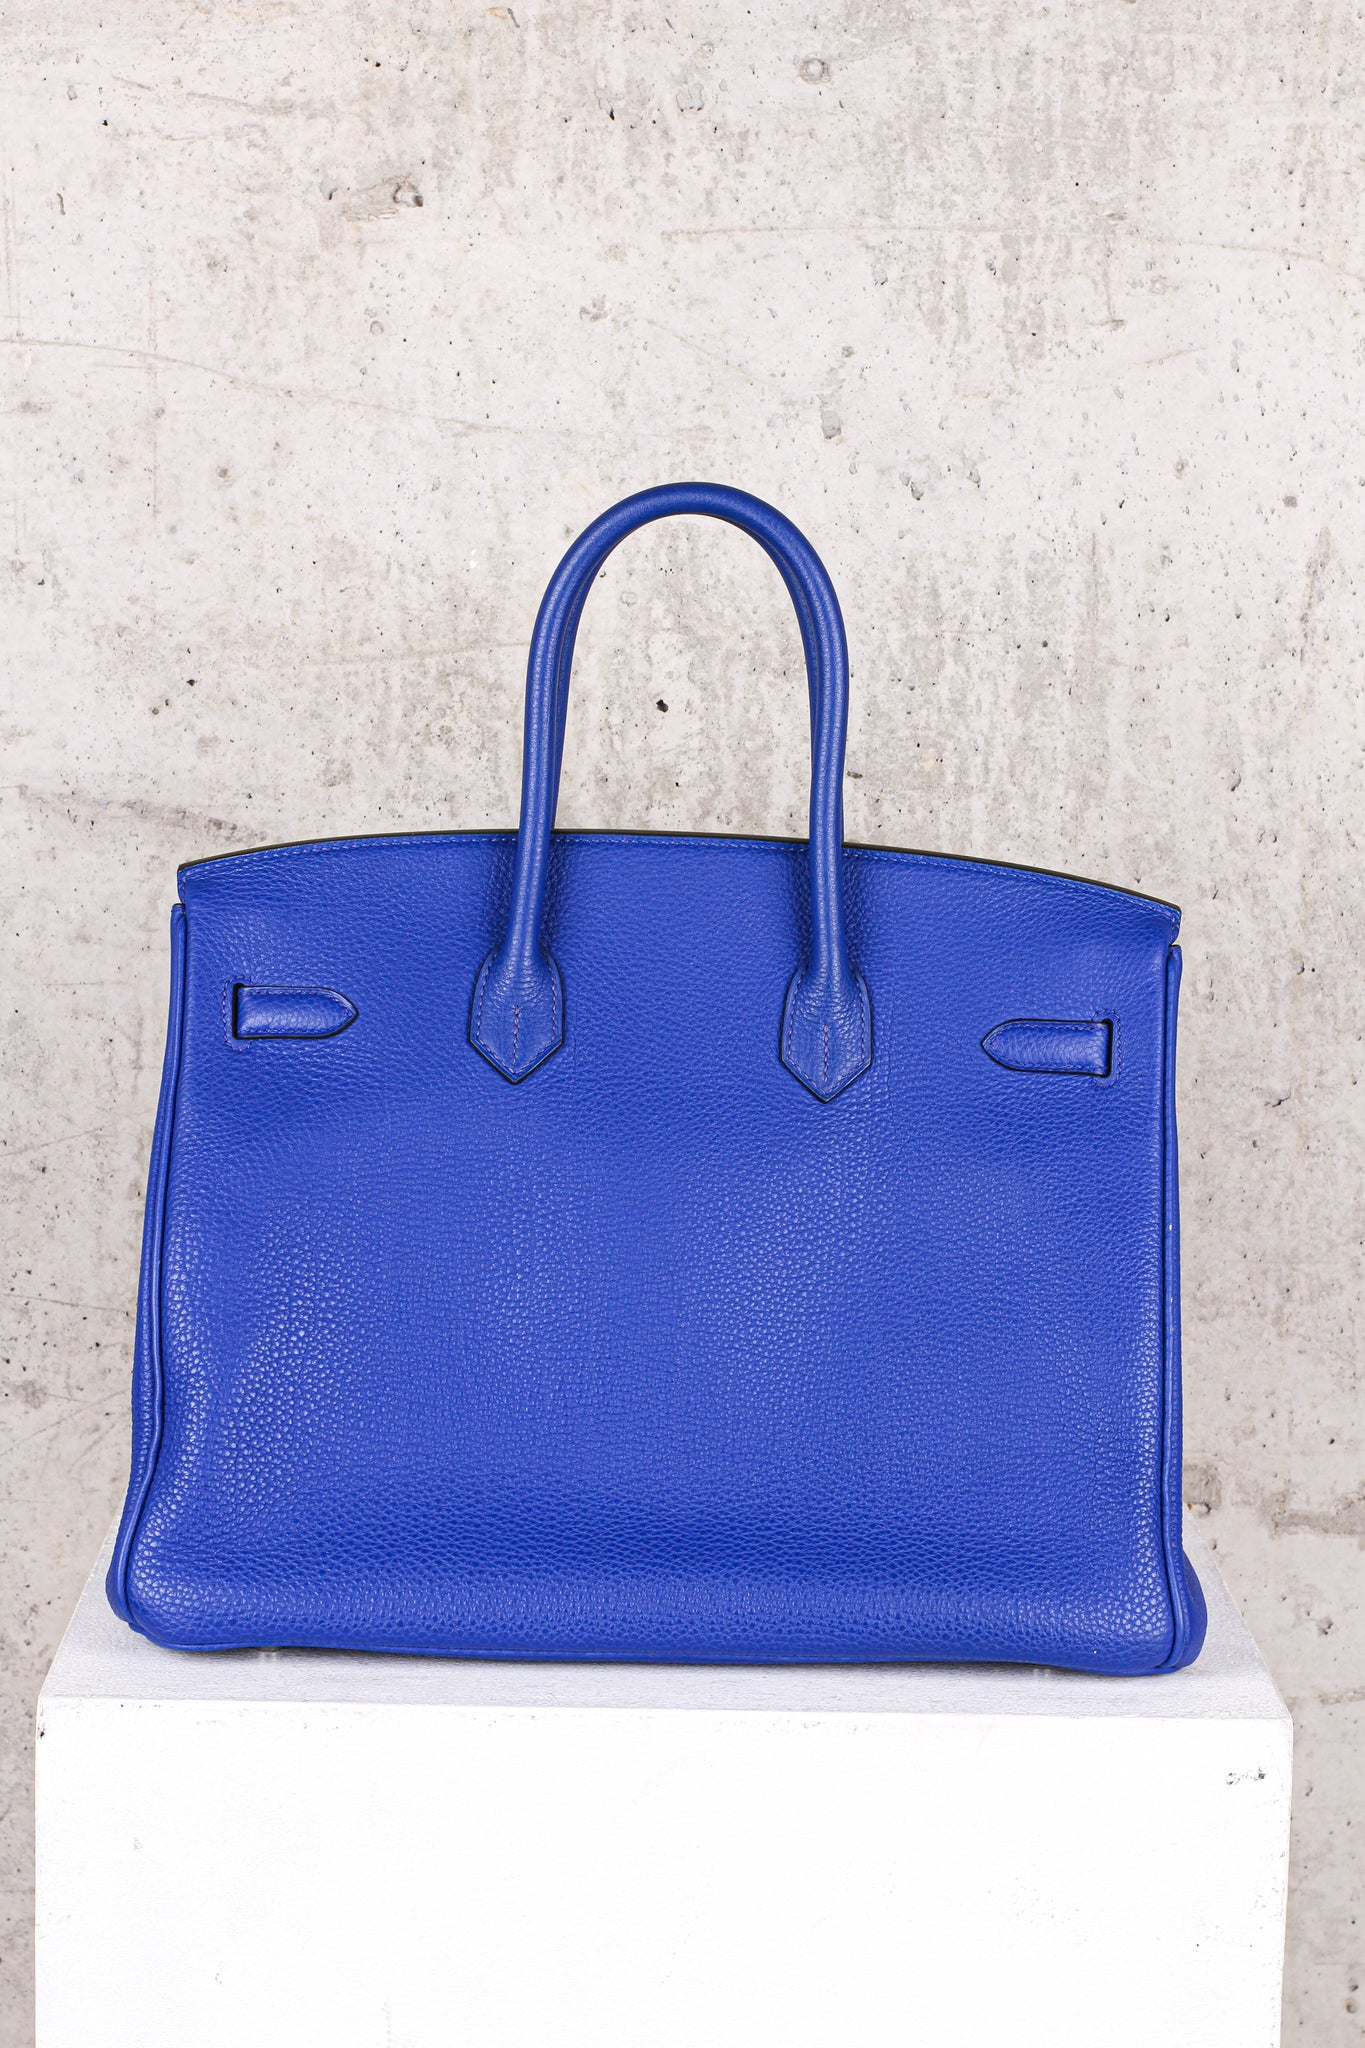 Hermés Birkin Blue 35 Togo Leather Gold Hardware - Brand New